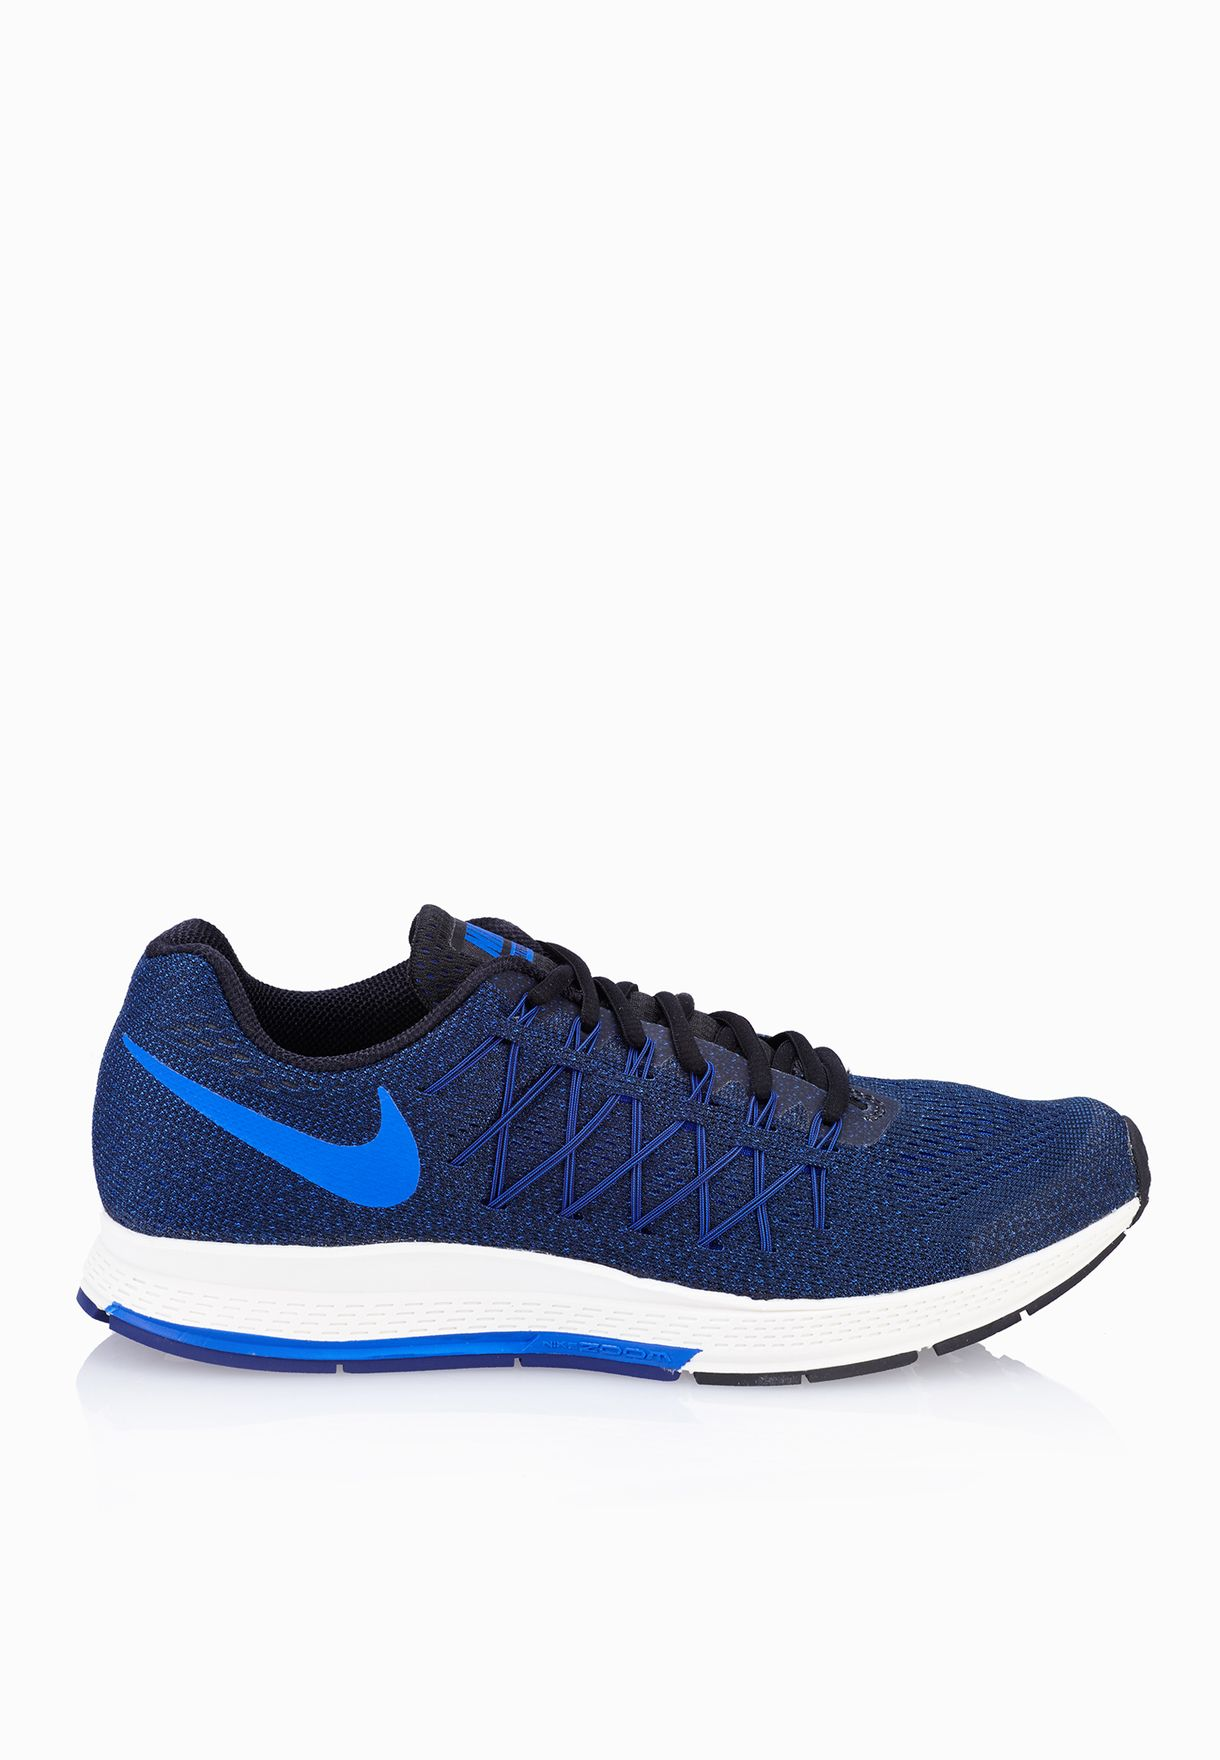 temperament shoes new product where to buy Shop Nike blue Air Zoom Pegasus 32 749340-014 for Men in Globally ...